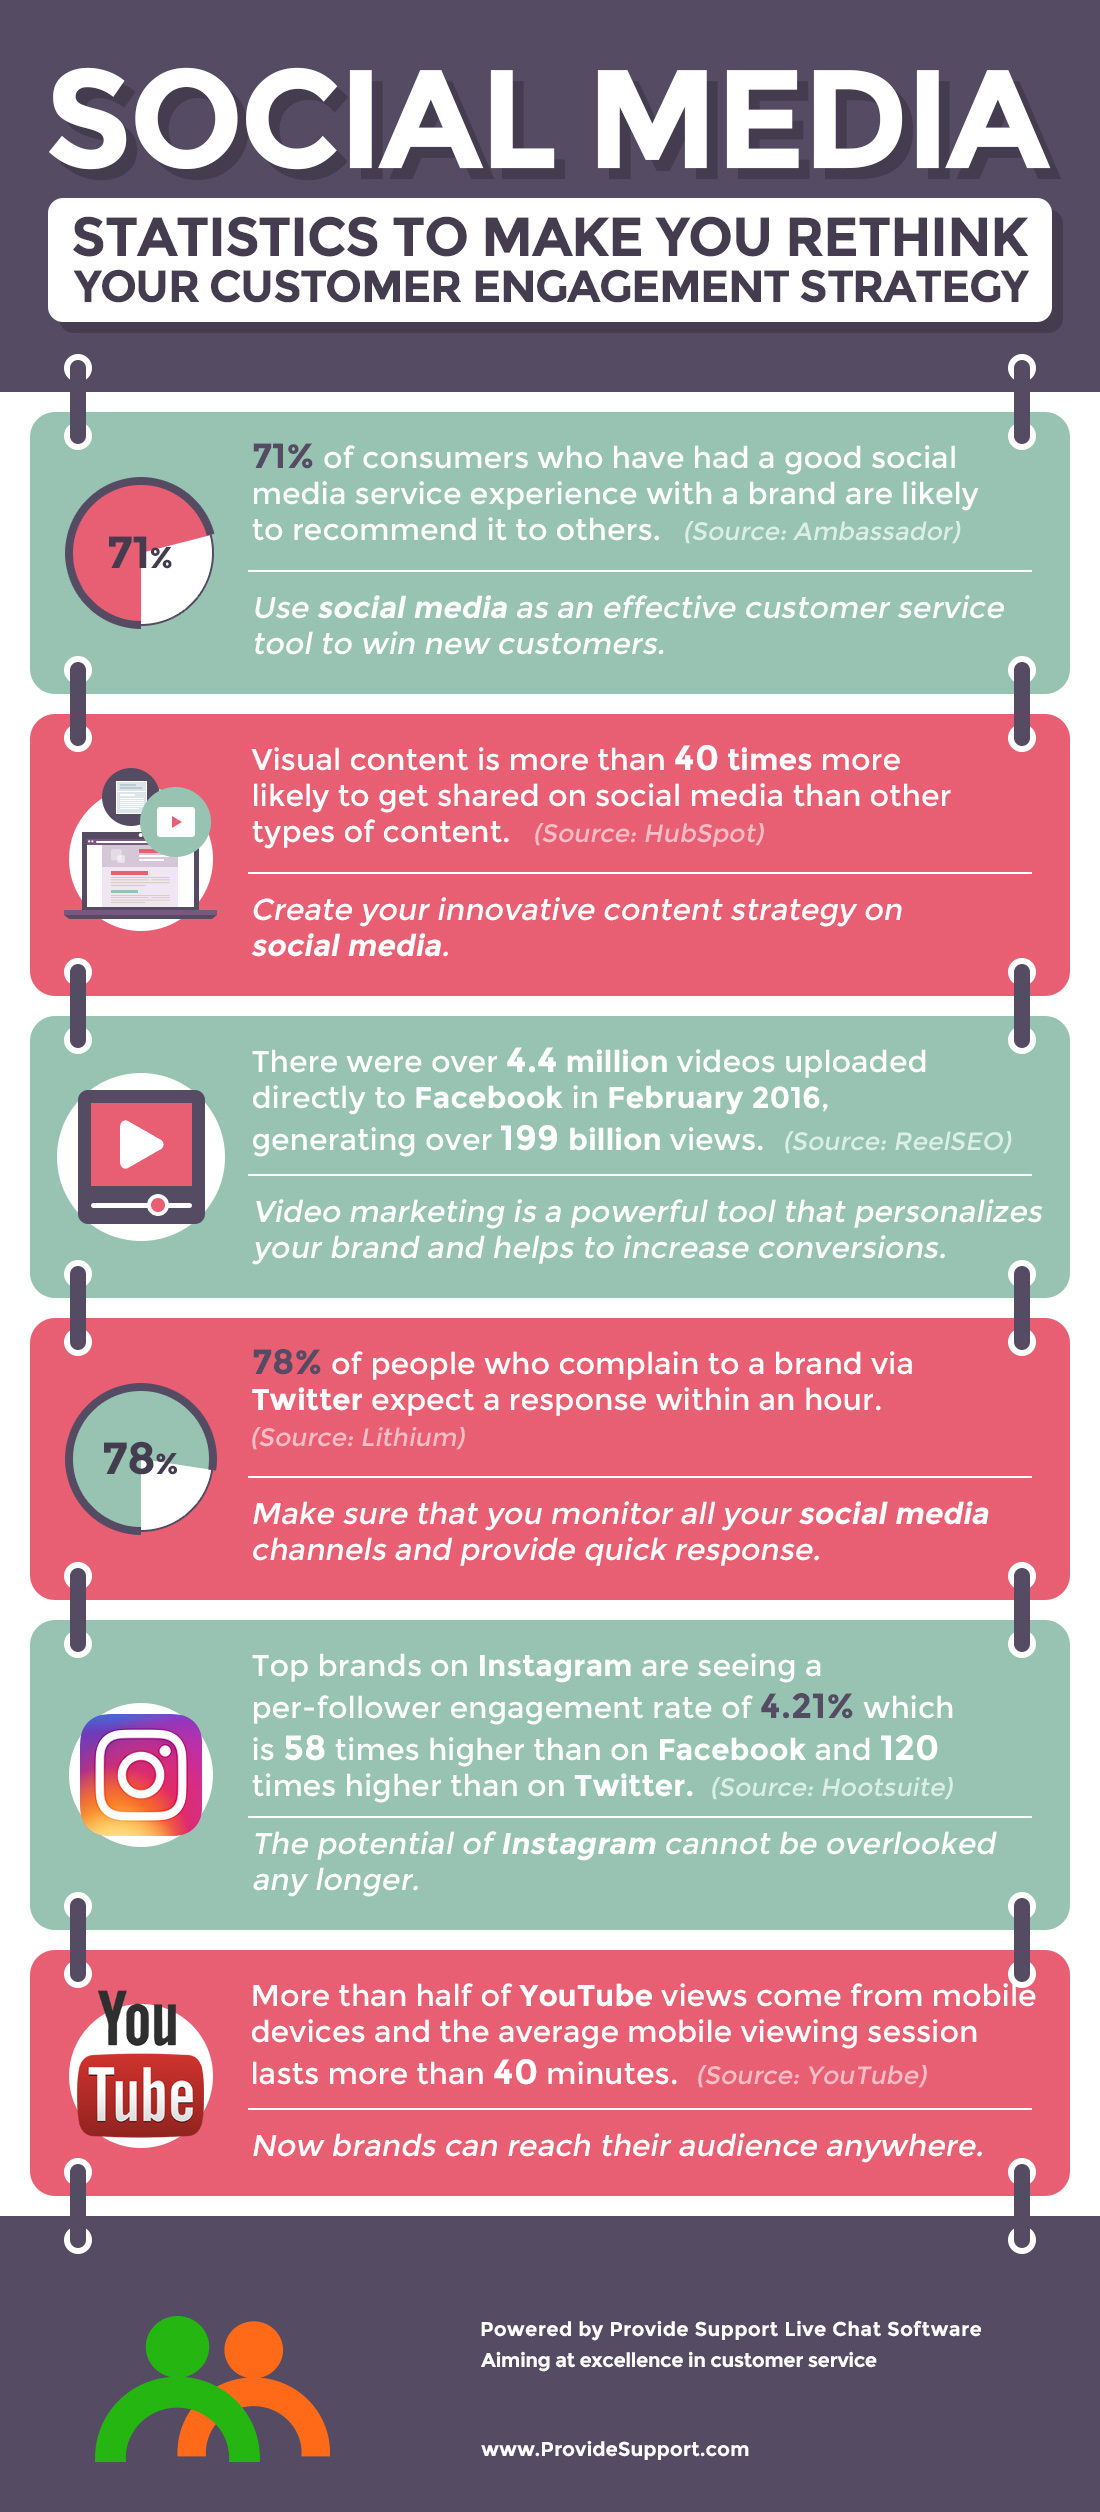 Social Media Statistics to Make you Rethink your Customer Engagement Strategy